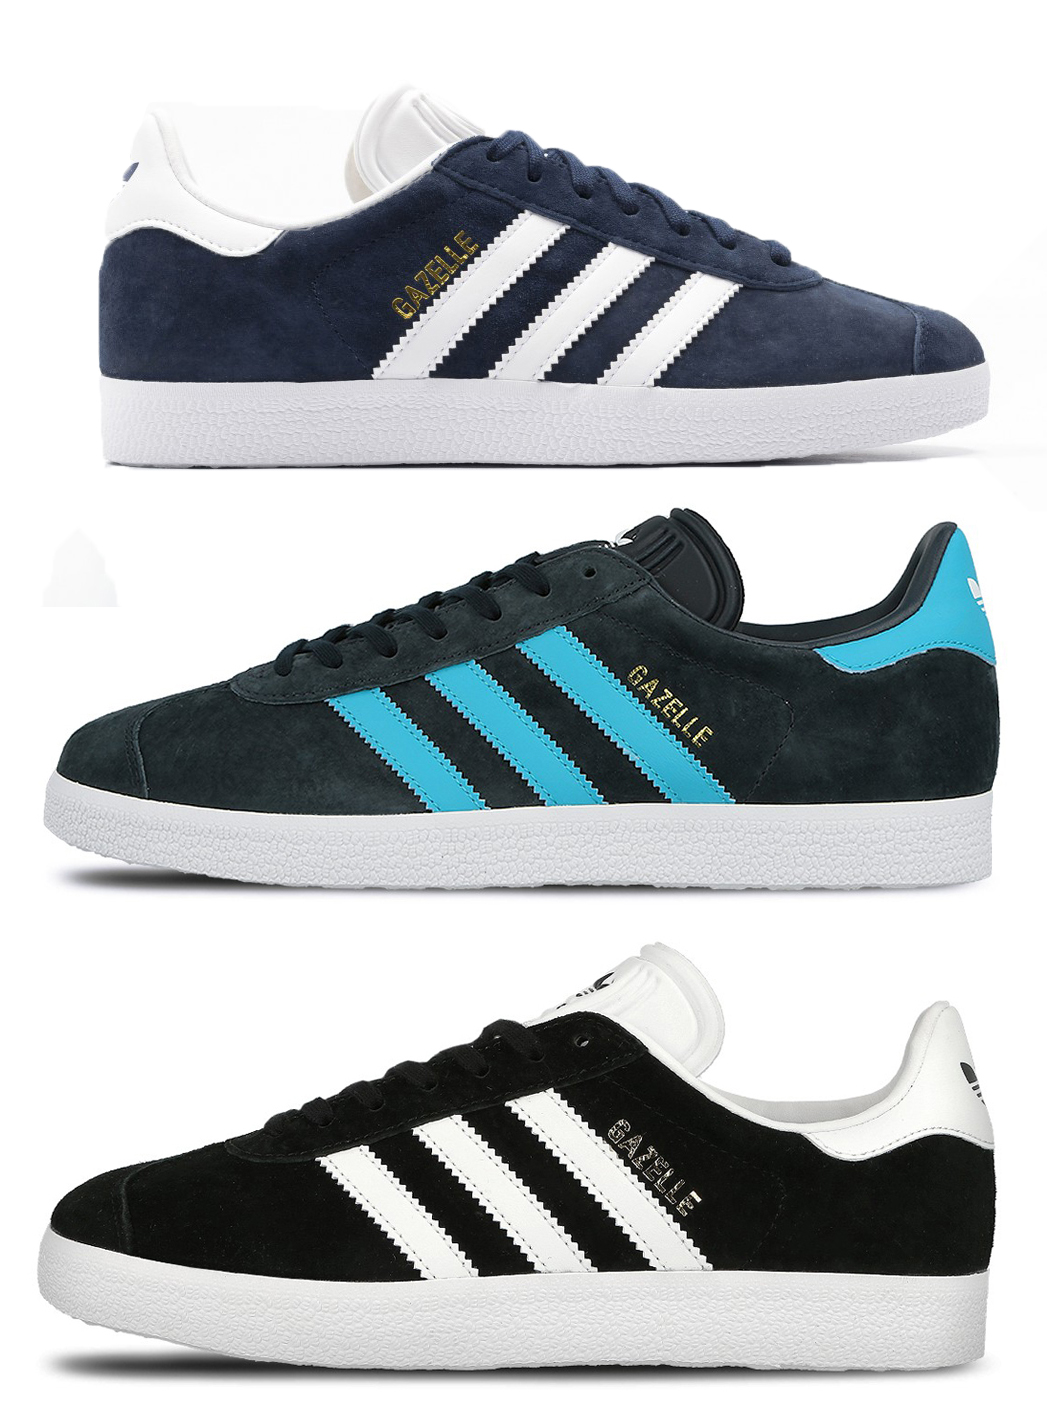 best website 511ea 7735b New Mens adidas Gazelle Originals Smart Casual Leather Classic Shoes  Trainers